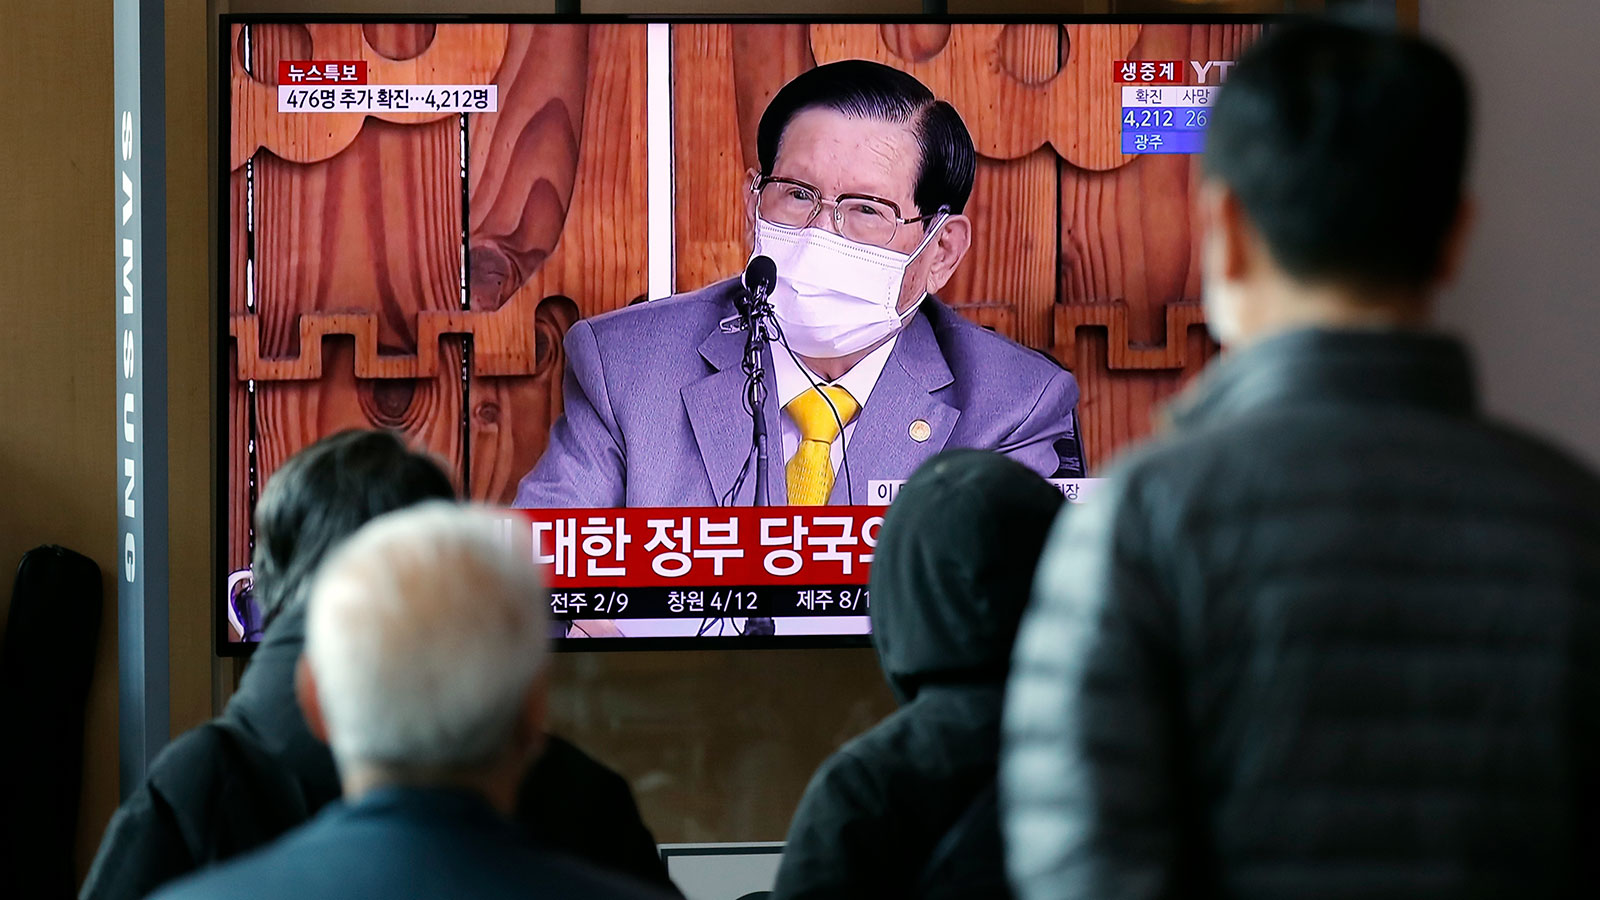 People watch a TV screen showing a live broadcast reporting about Lee Man-hee, a leader of Shincheonji Church of Jesus, at the Seoul Railway Station in Seoul on March 2.